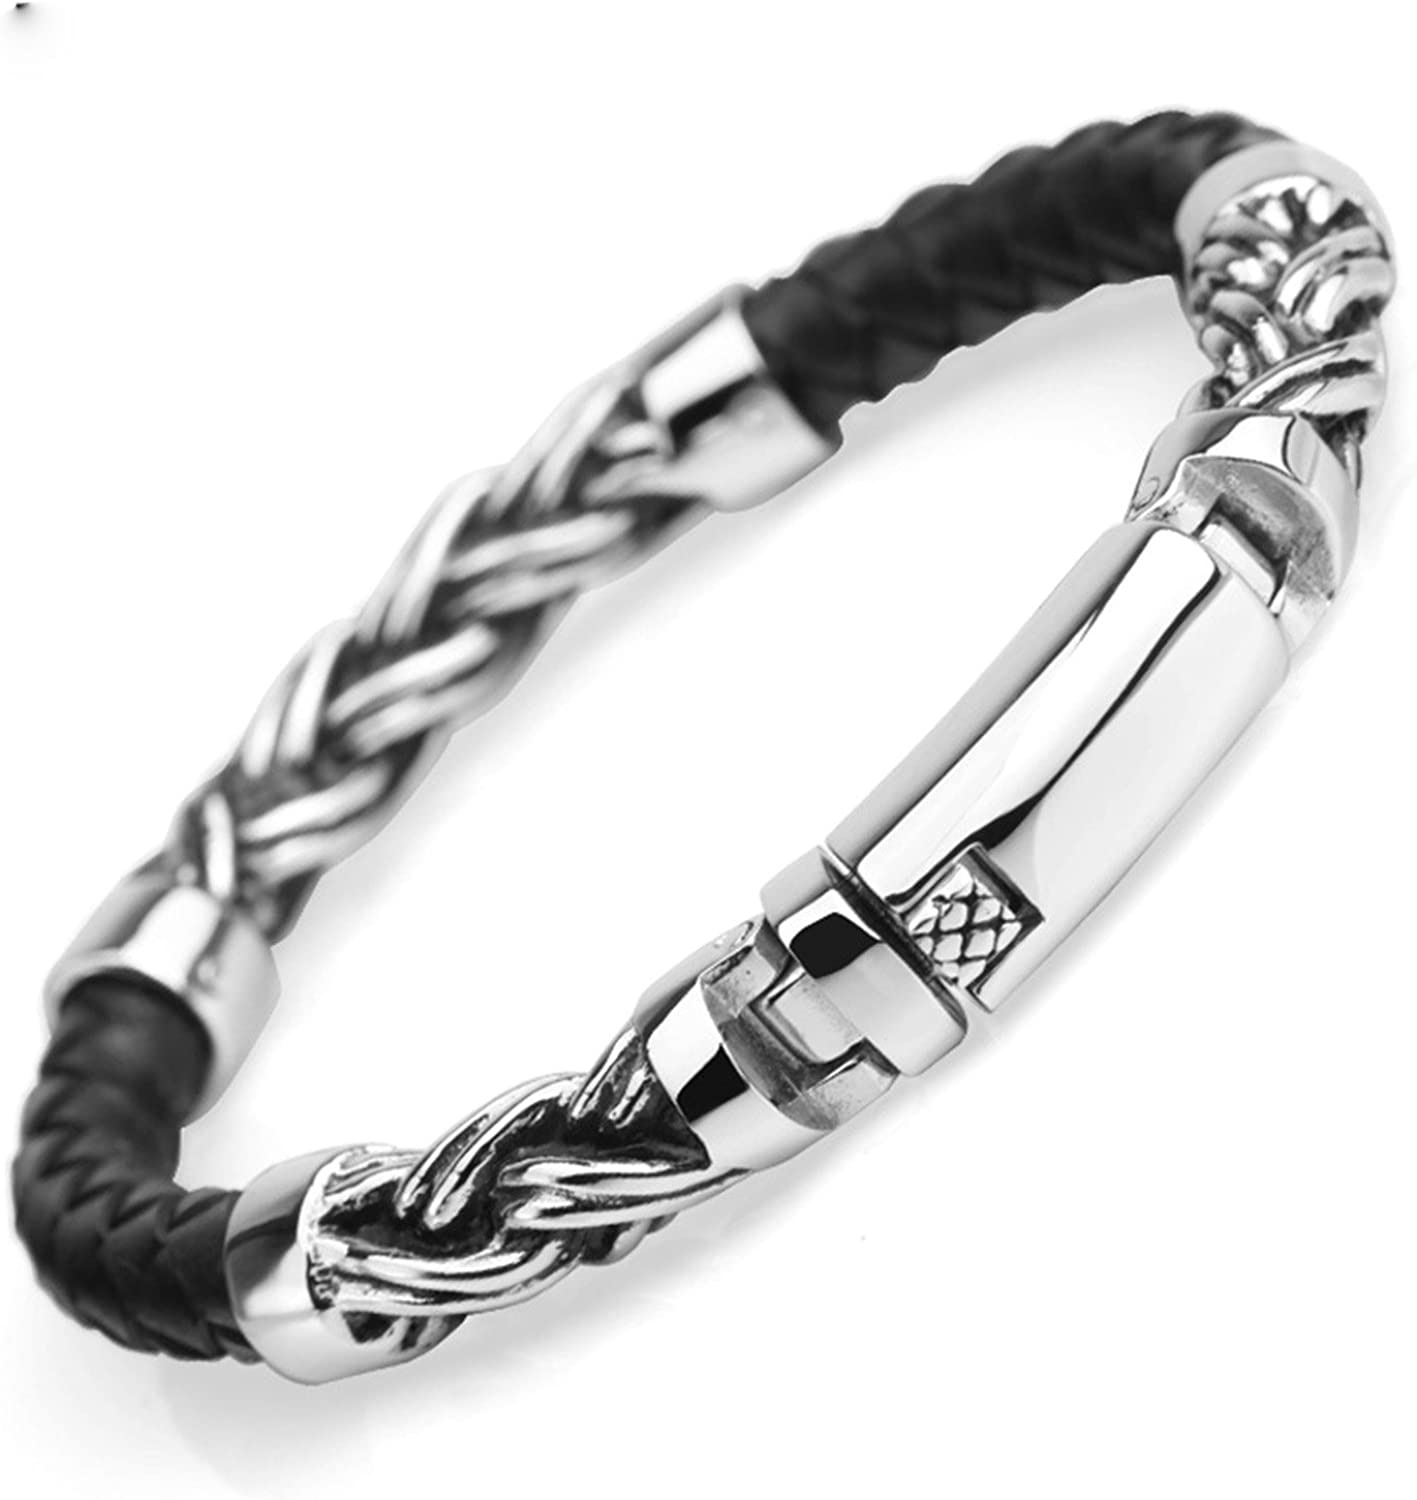 Aooaz Bracelet Titanium Steel Bangle Bracelet Oval Bracelets for Women